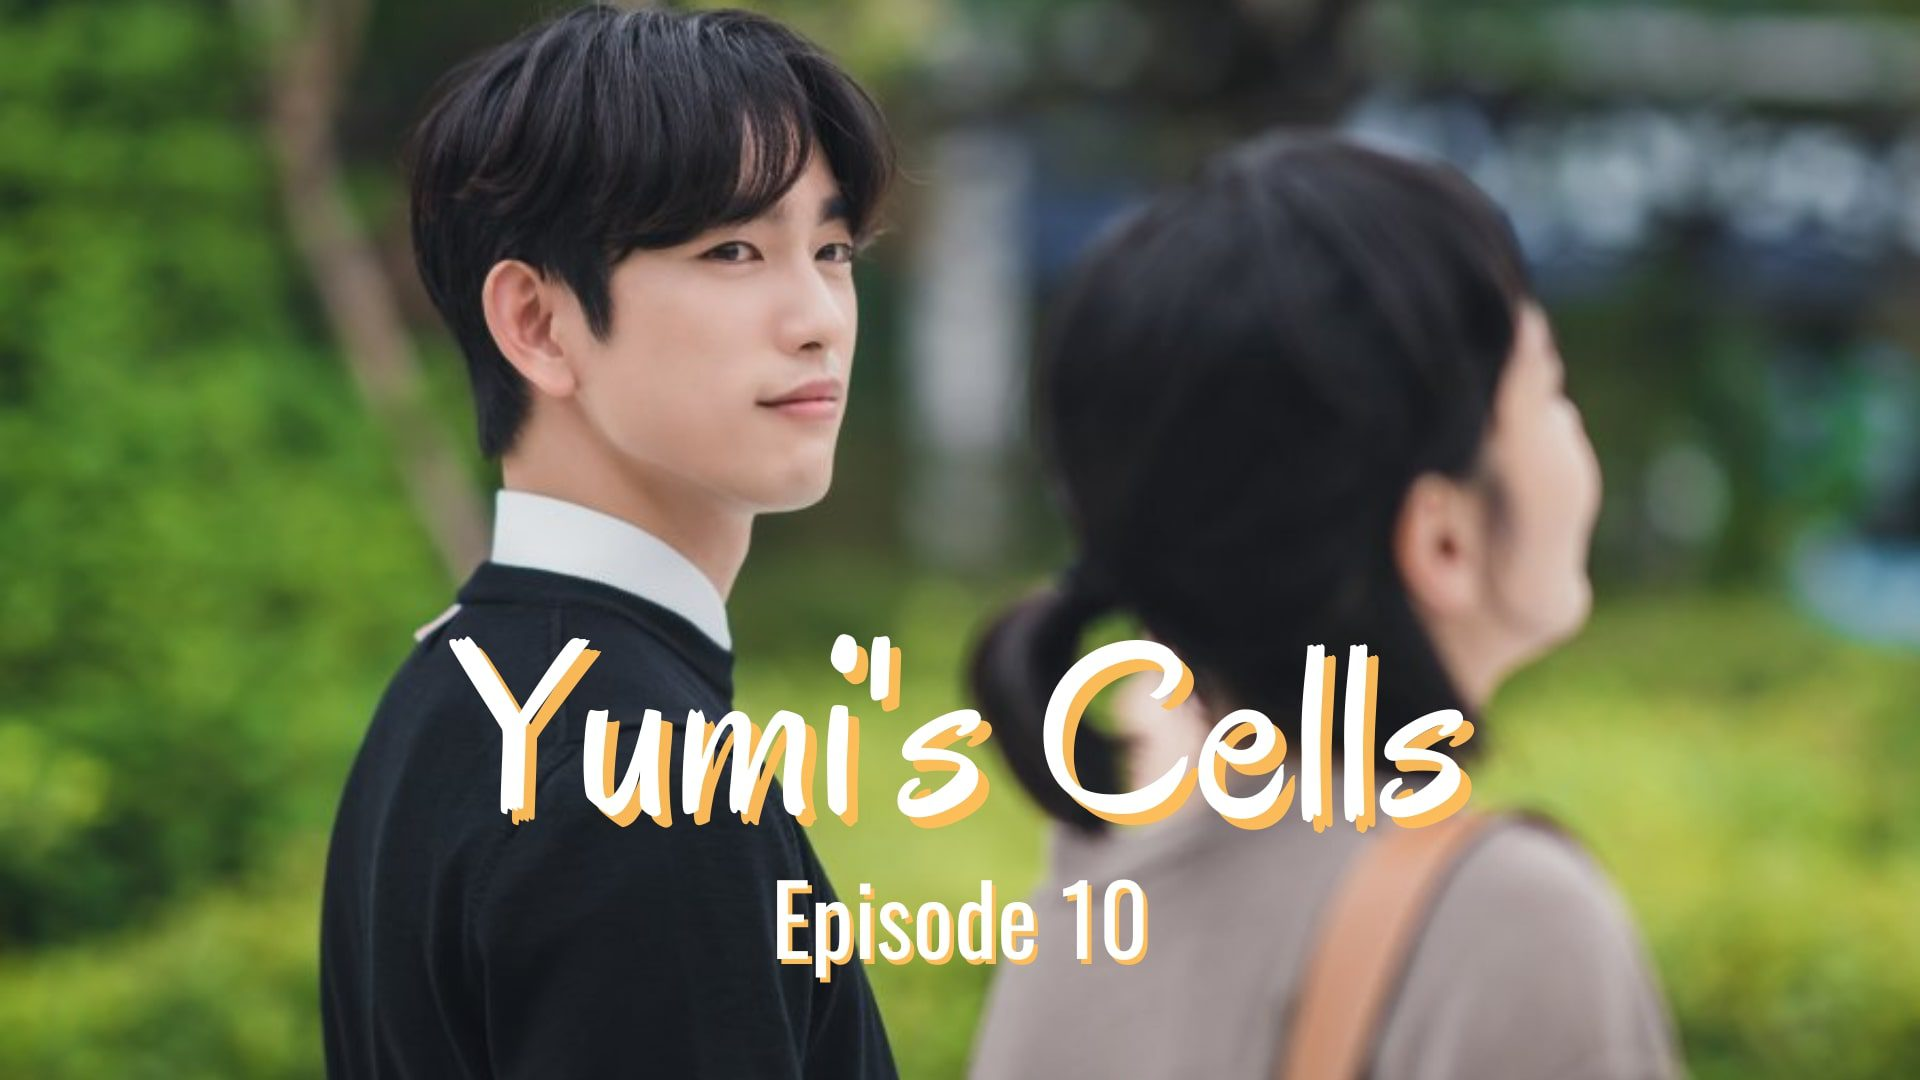 Yumi's Cells Episode 10